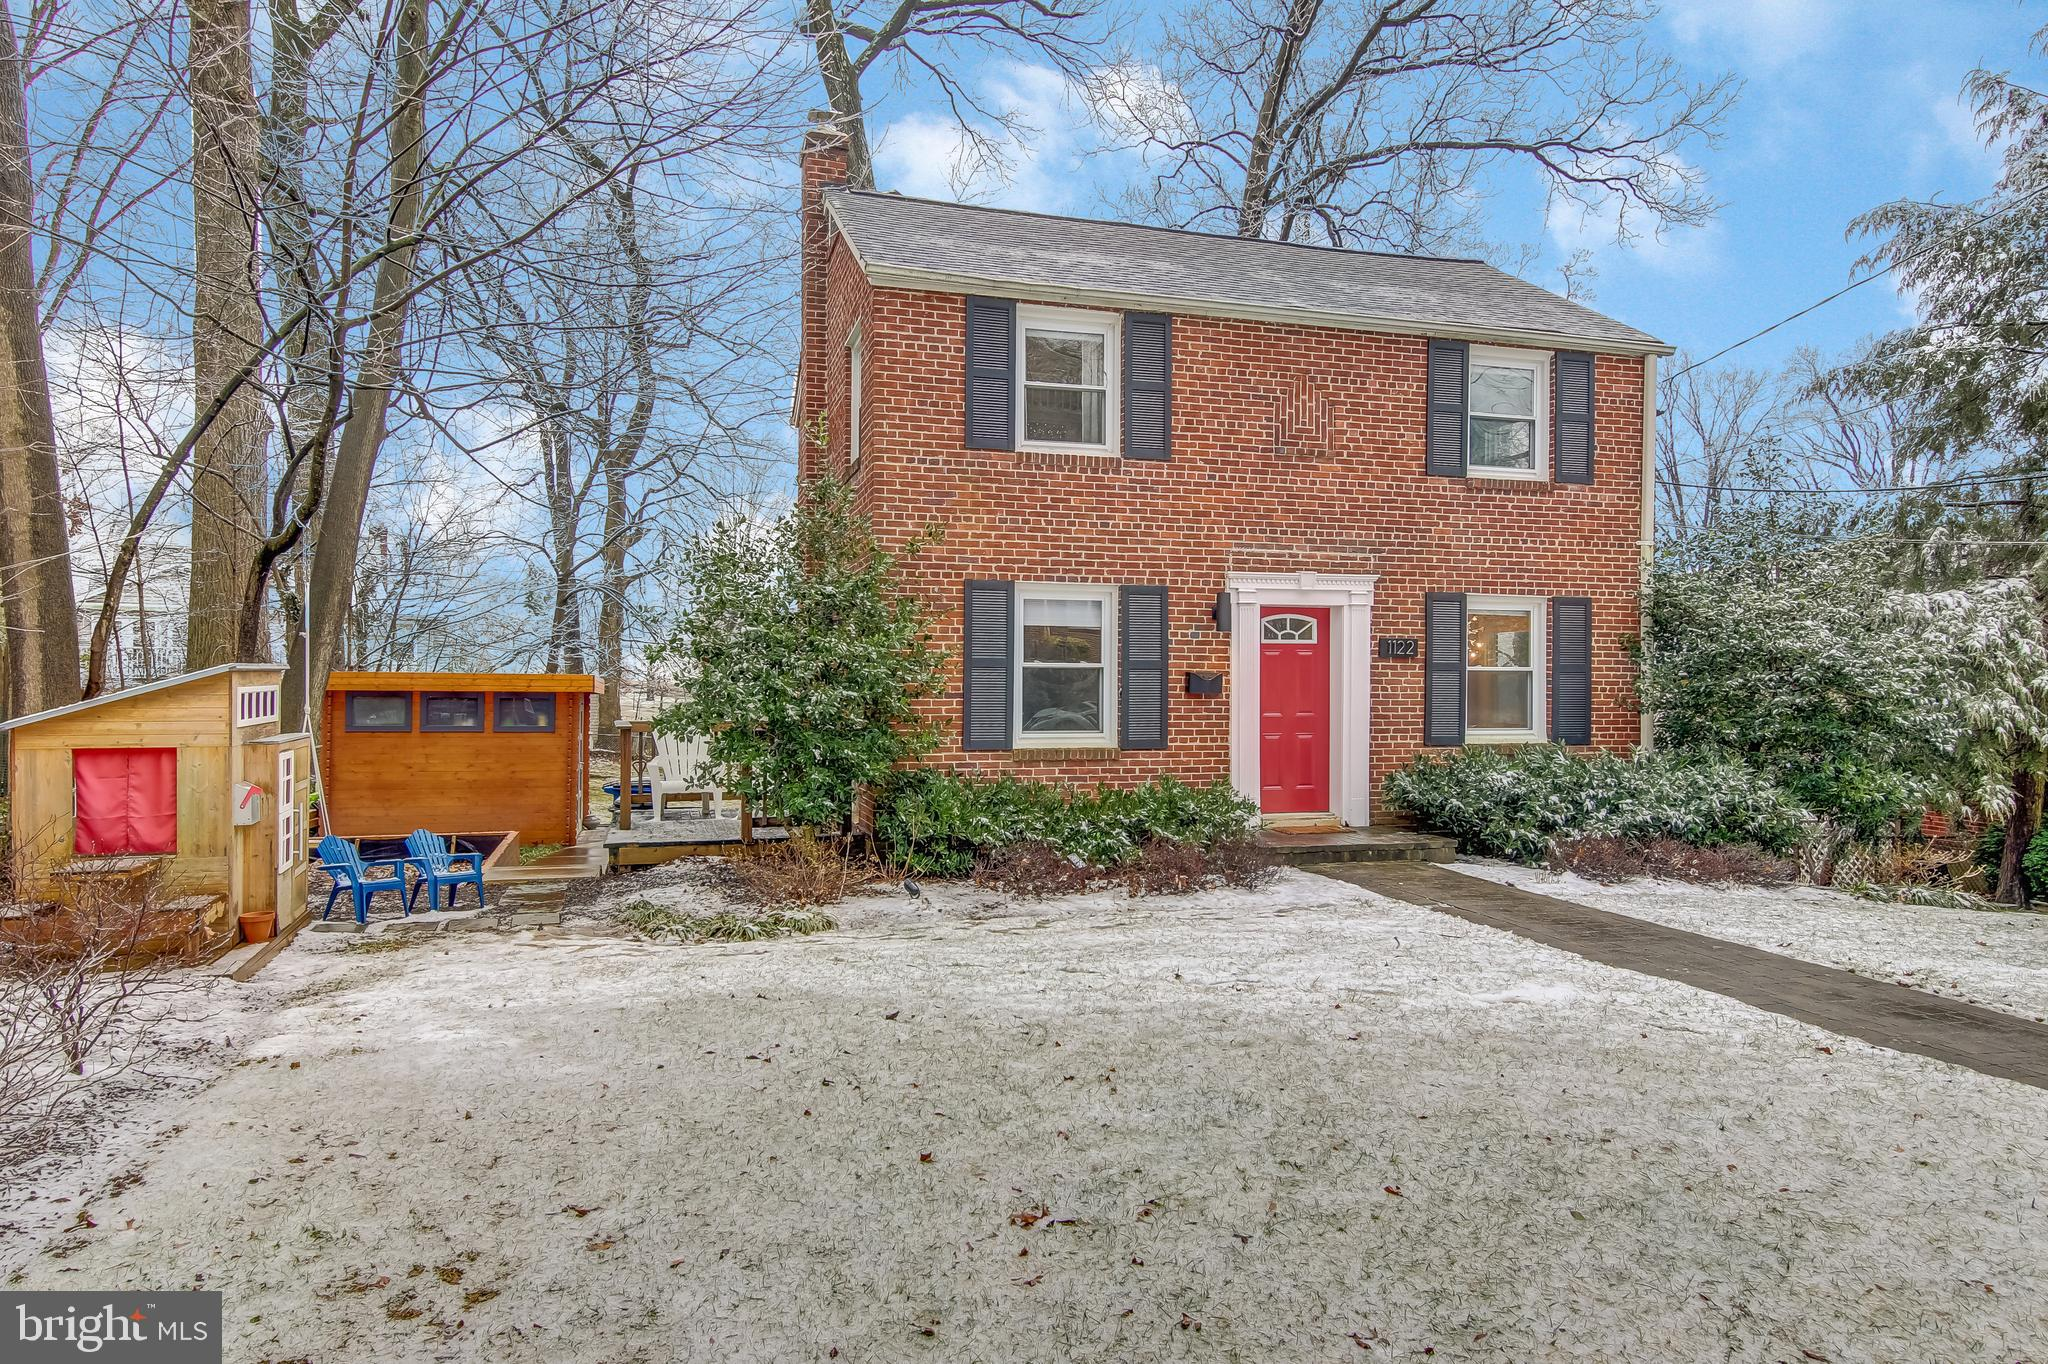 1122 MEURILEE LANE, SILVER SPRING, MD 20901